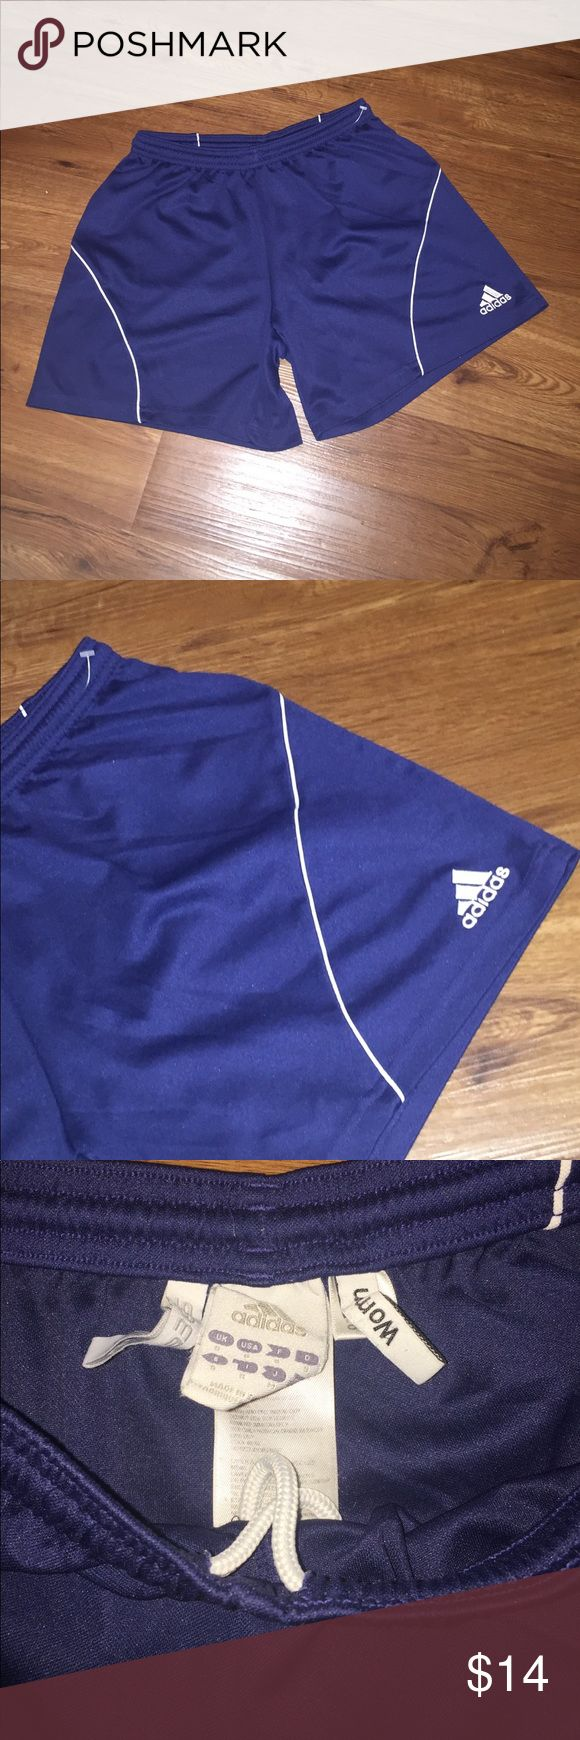 ADIDAS clima 365 Atlantic workout shorts SMALL Adidas clima 365- blue  Workout running shorts SMALL Used good condition- Great for working out at the gym running exercising- blue adidas Shorts